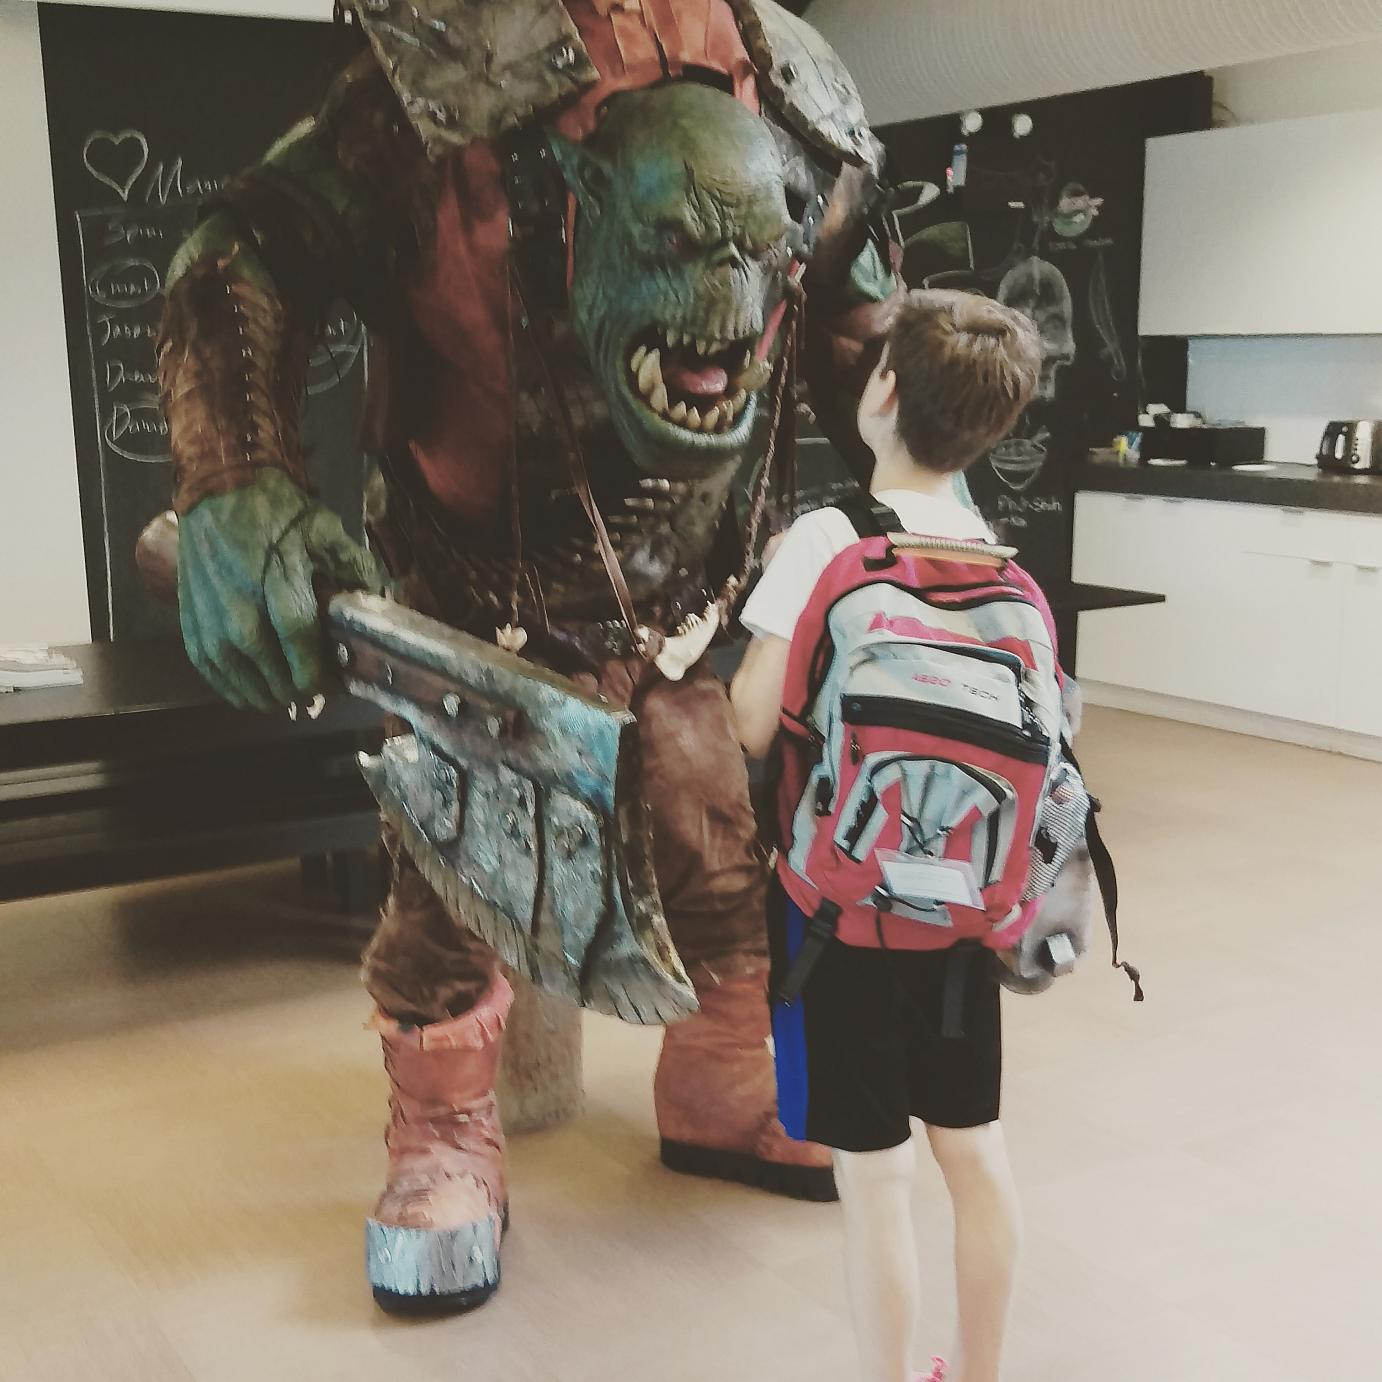 Orcs aren't that scary...